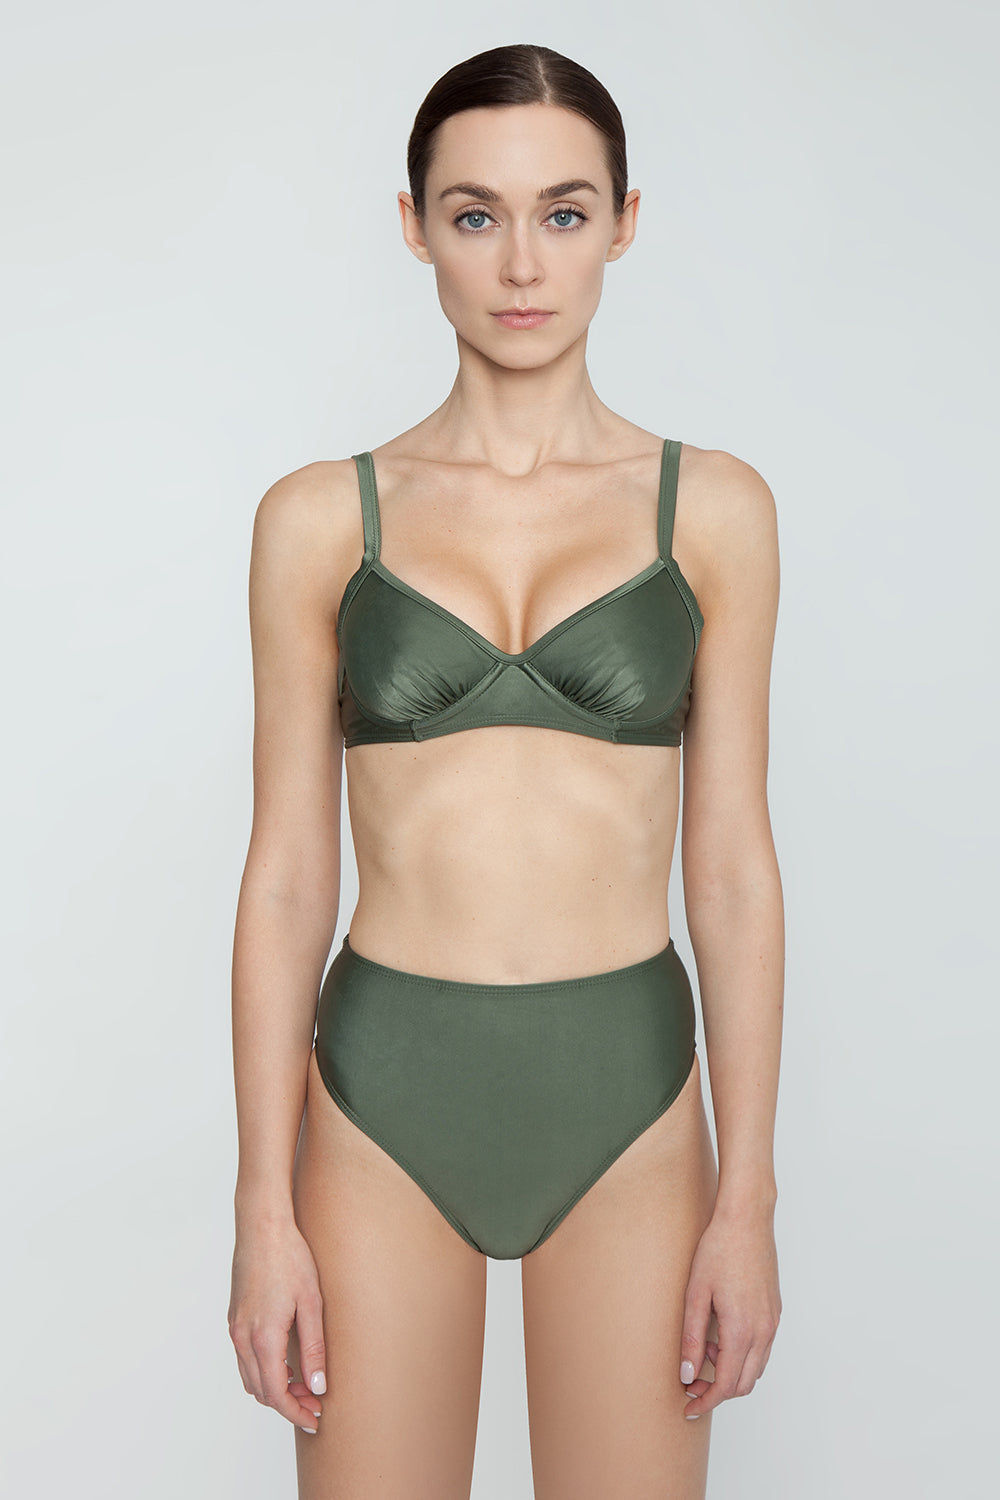 AGUA DE COCO Underwire Fixed Bikini Top - Olive Green Bikini Top | Olive Green| Agua De Coco Underwire Fixed Bikini Top - Olive Green Olive green bikini top Underwire detail Adjustable shoulder straps  Back tie closure Front View